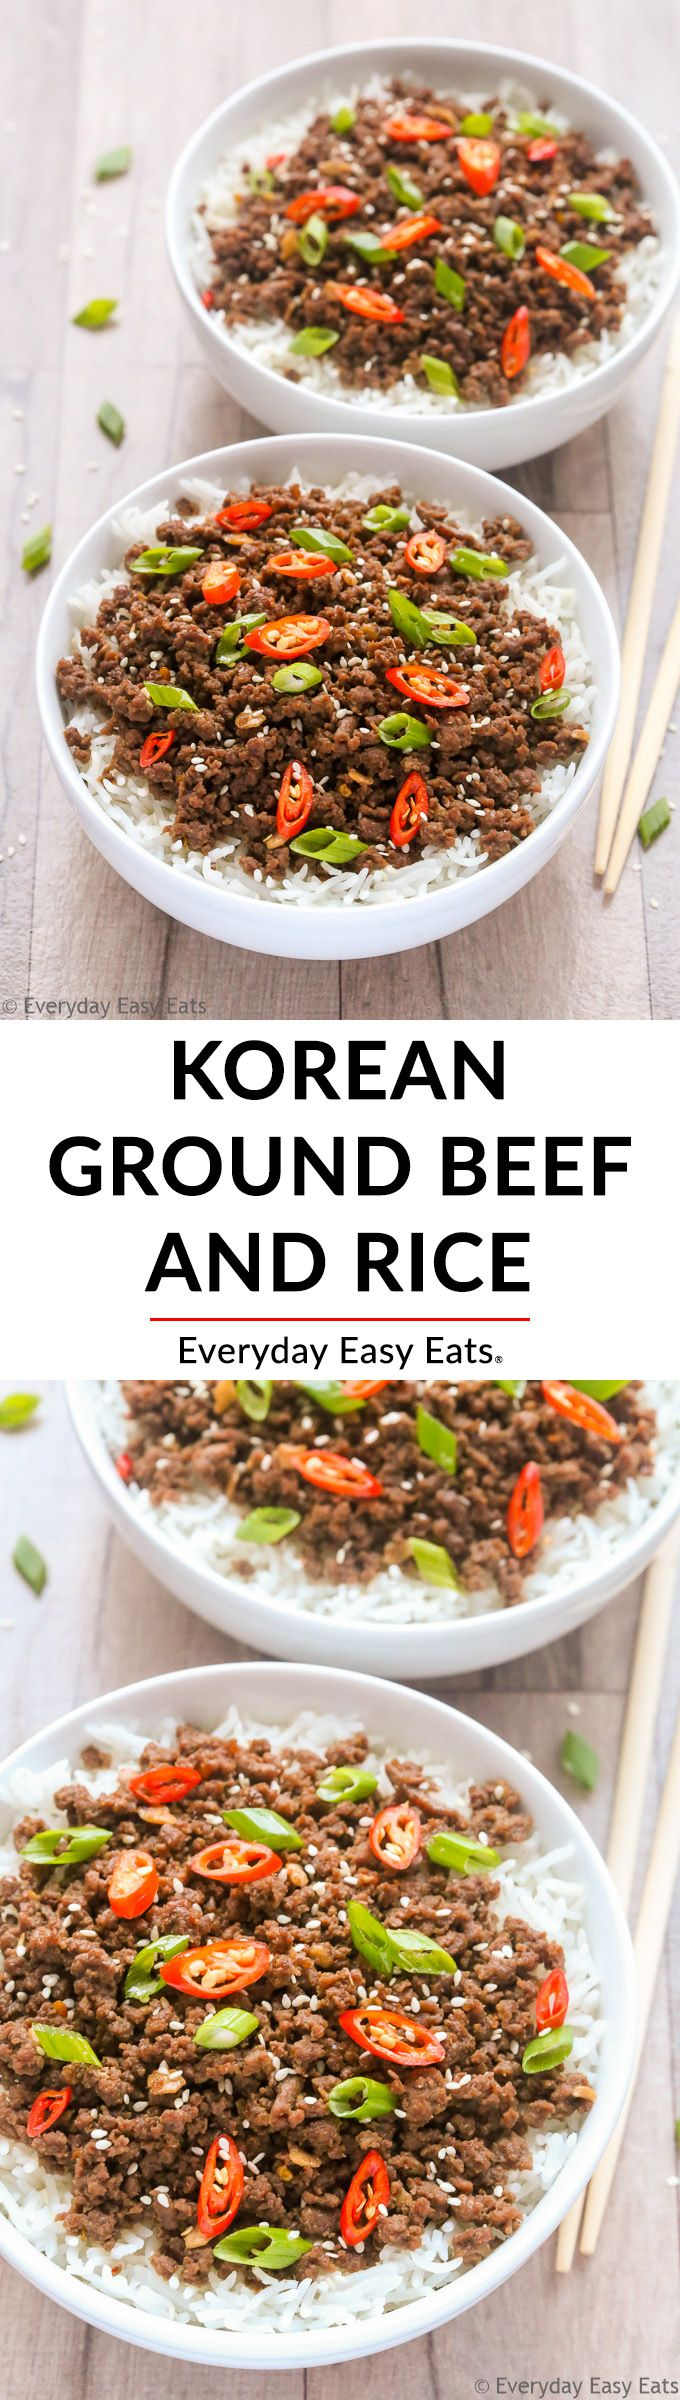 This Korean Ground Beef and Rice recipe is so tasty and easy to make! Ready in just 15 minutes! #korean #easyrecipe #dinner #recipe